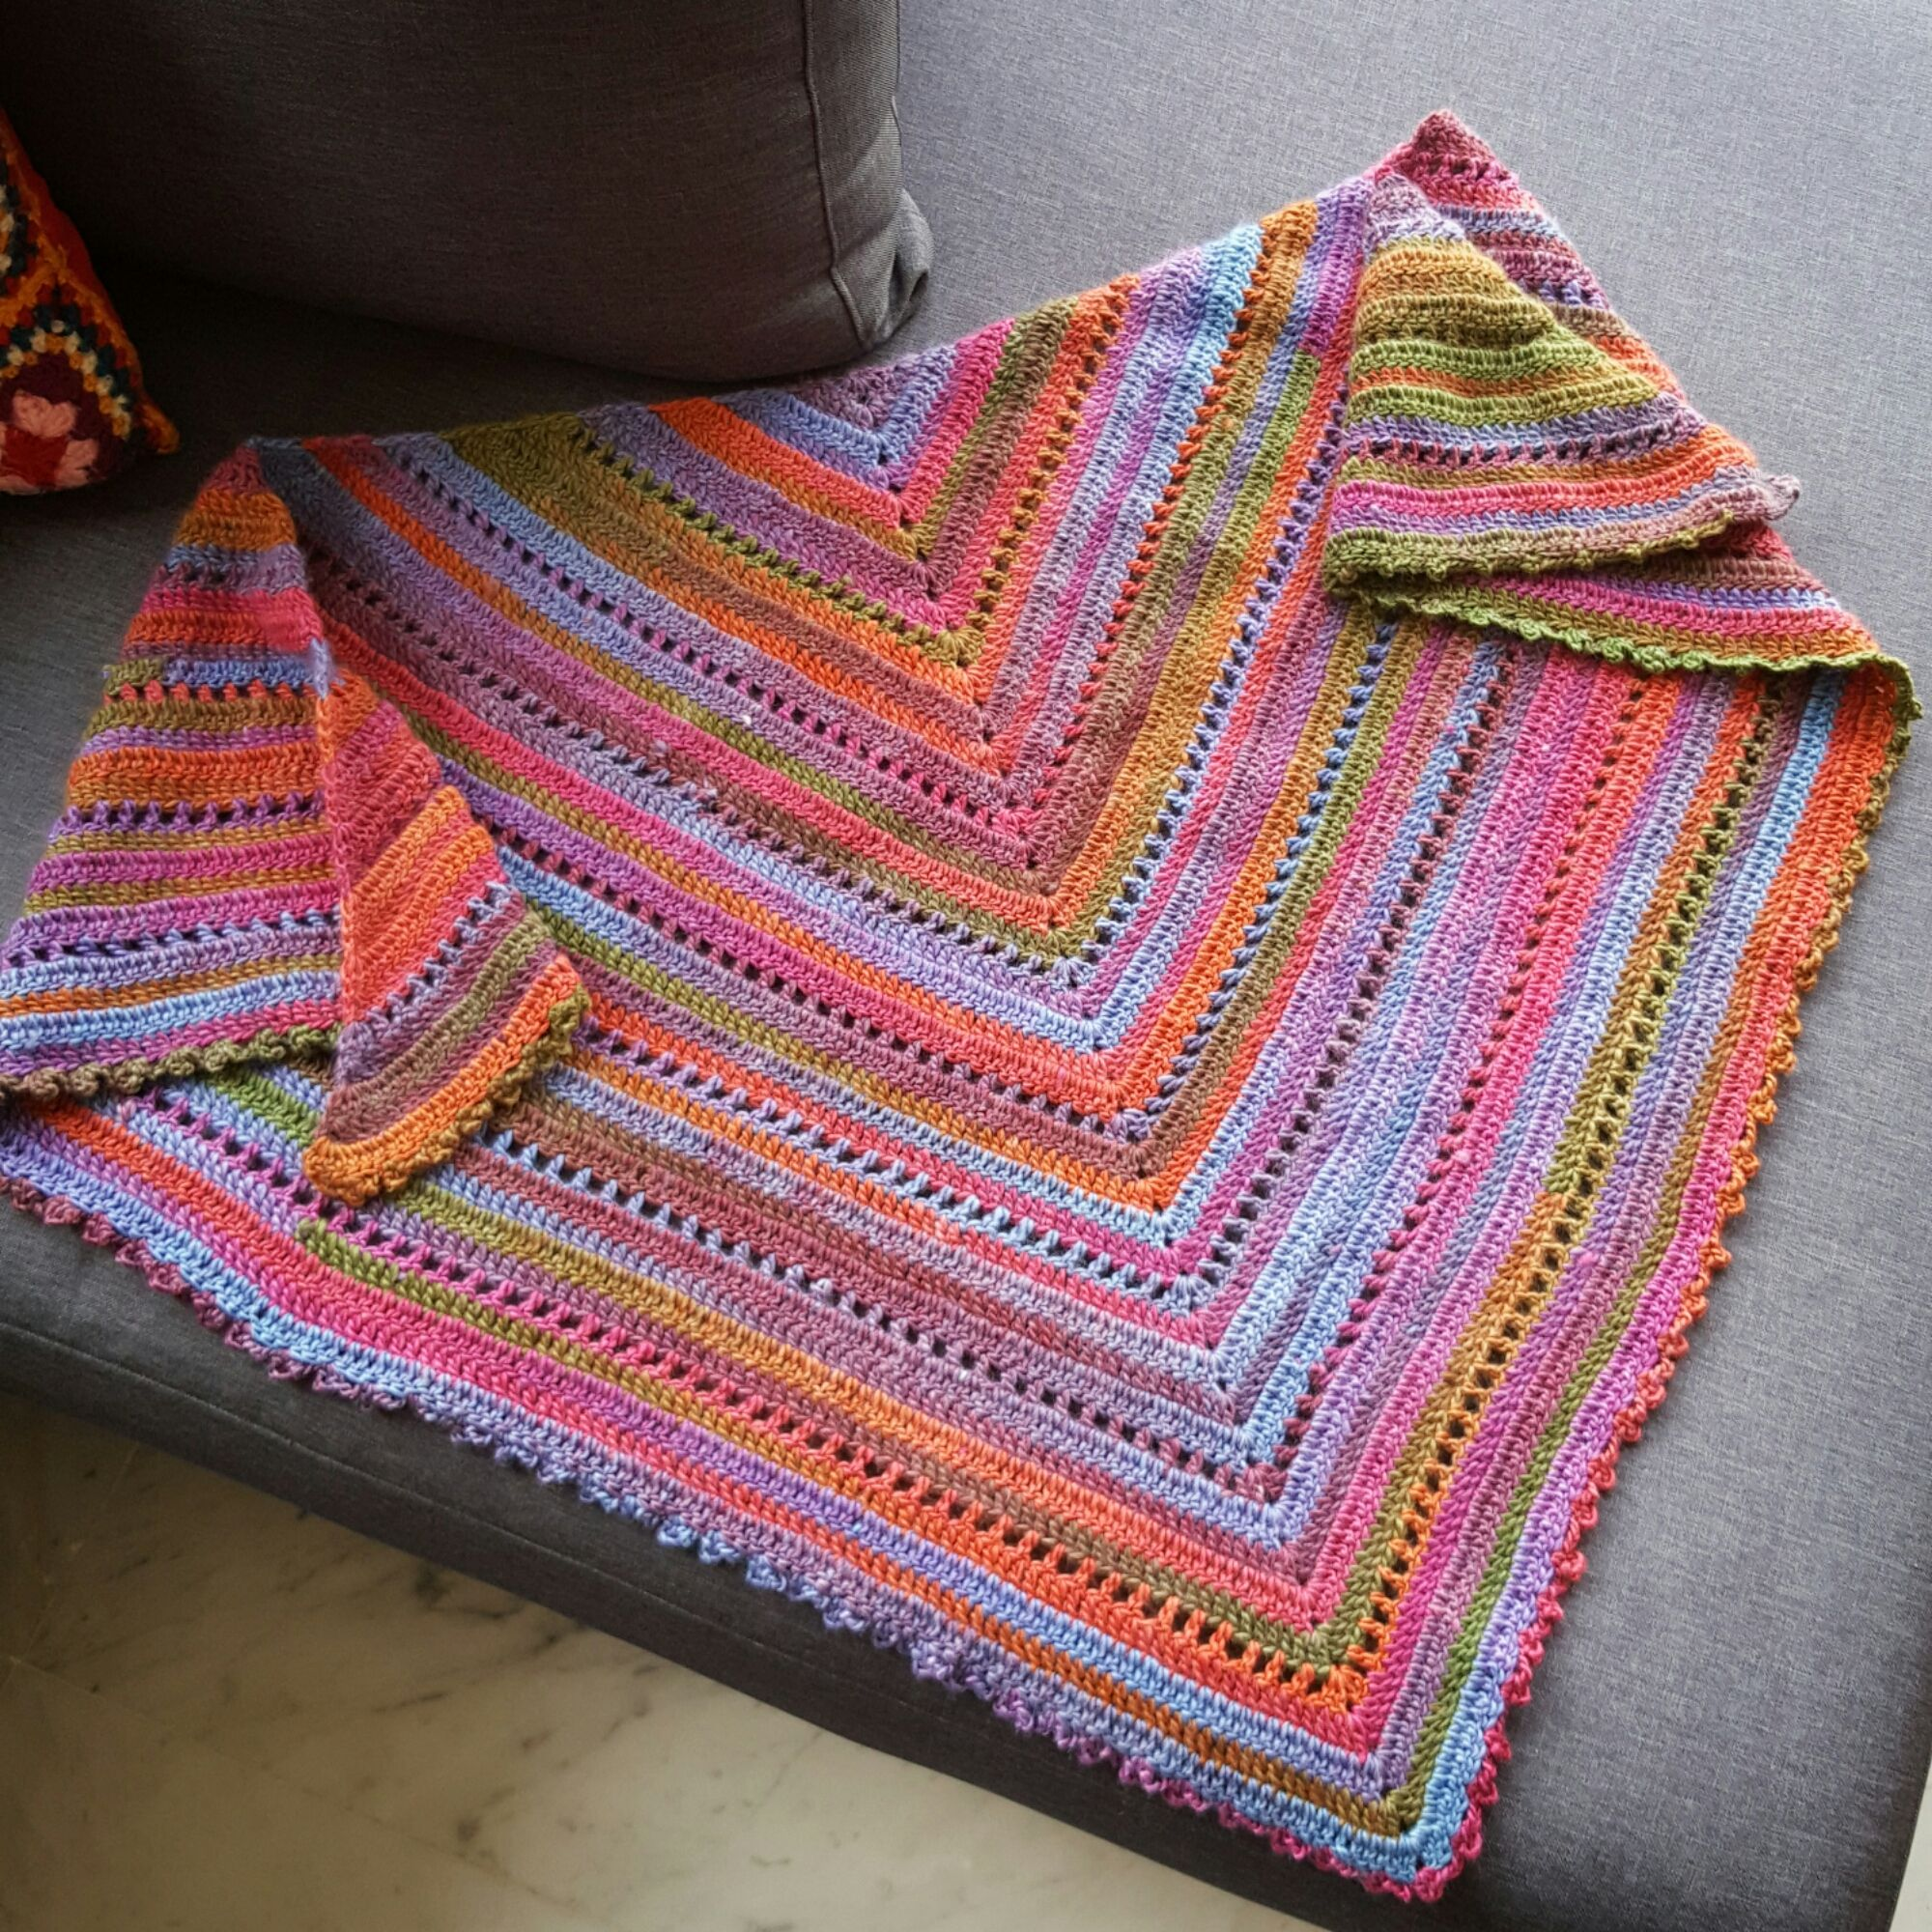 free patterns – Le Monde De Sucrette | Tücher | Pinterest ...